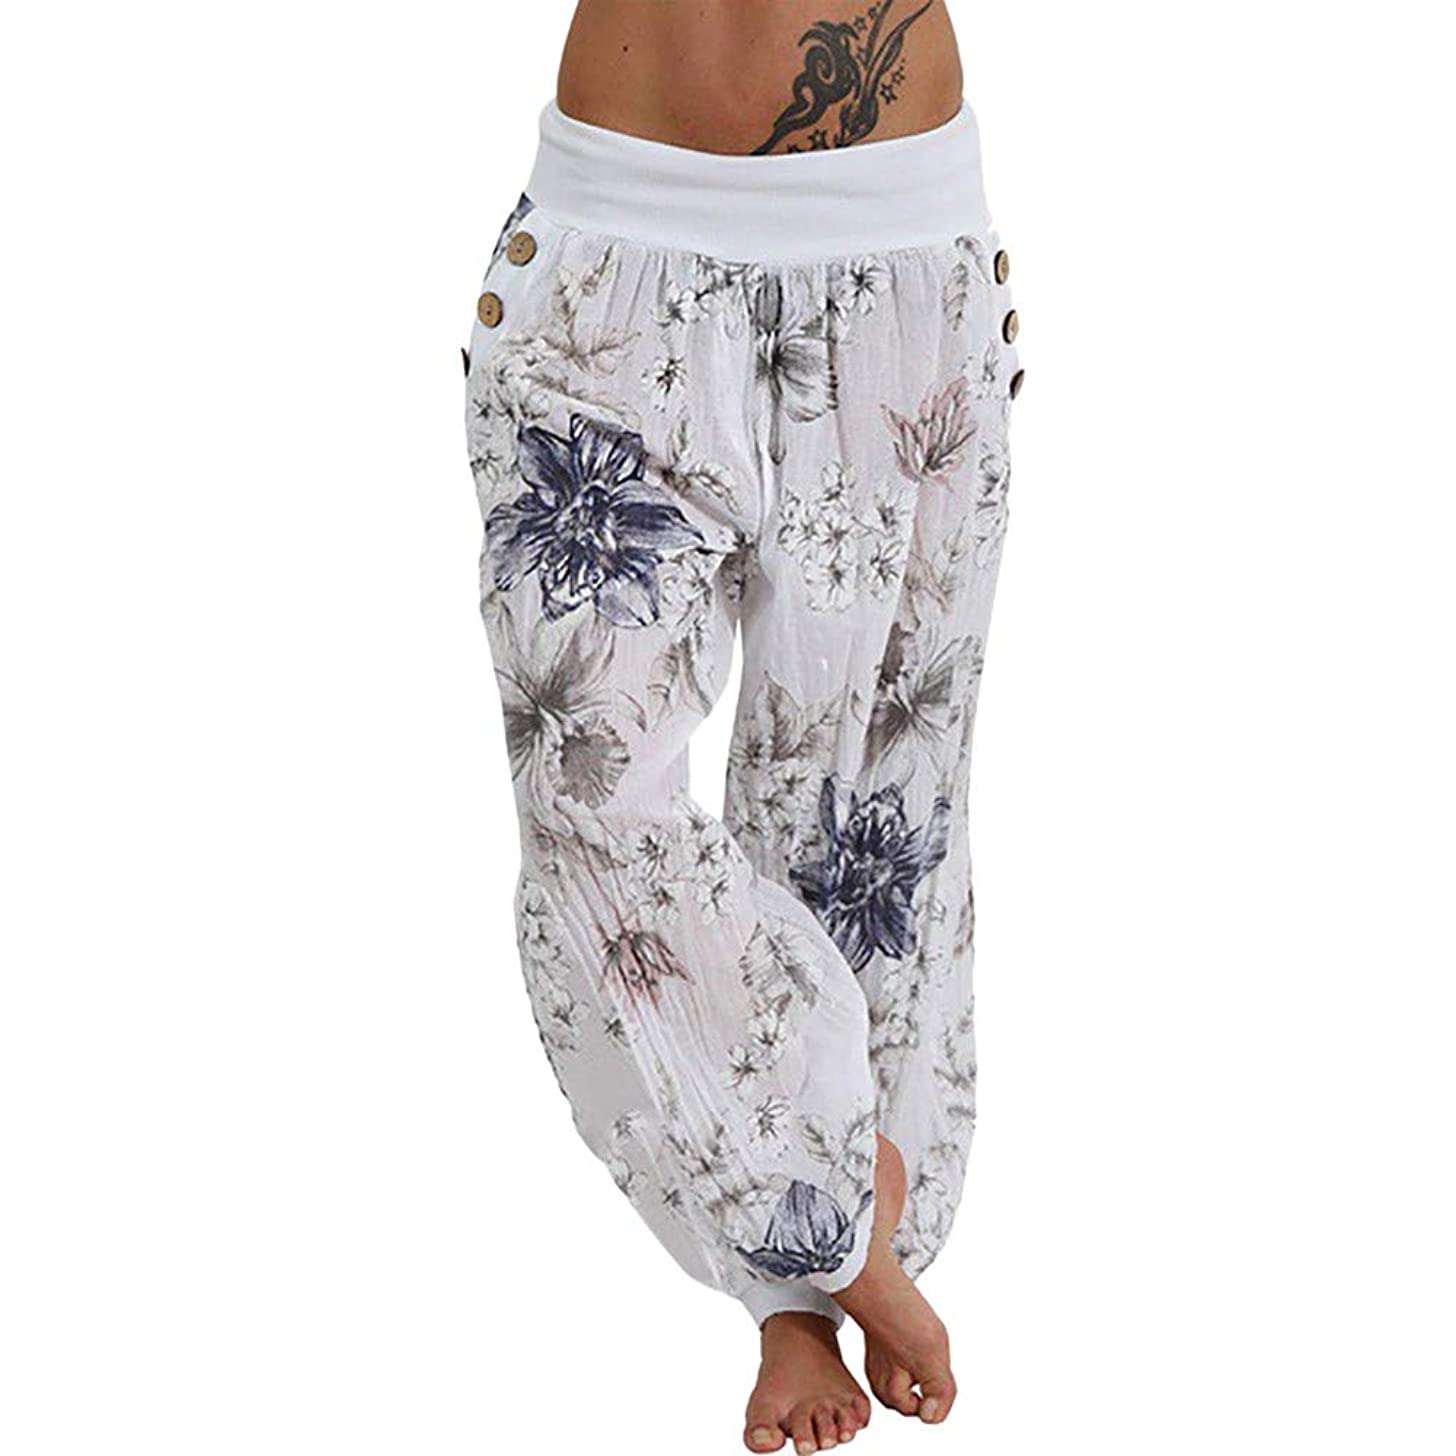 Comfy Trousers, Women's Aztec Tribal Design Yoga Wide Leg Harem Pants US